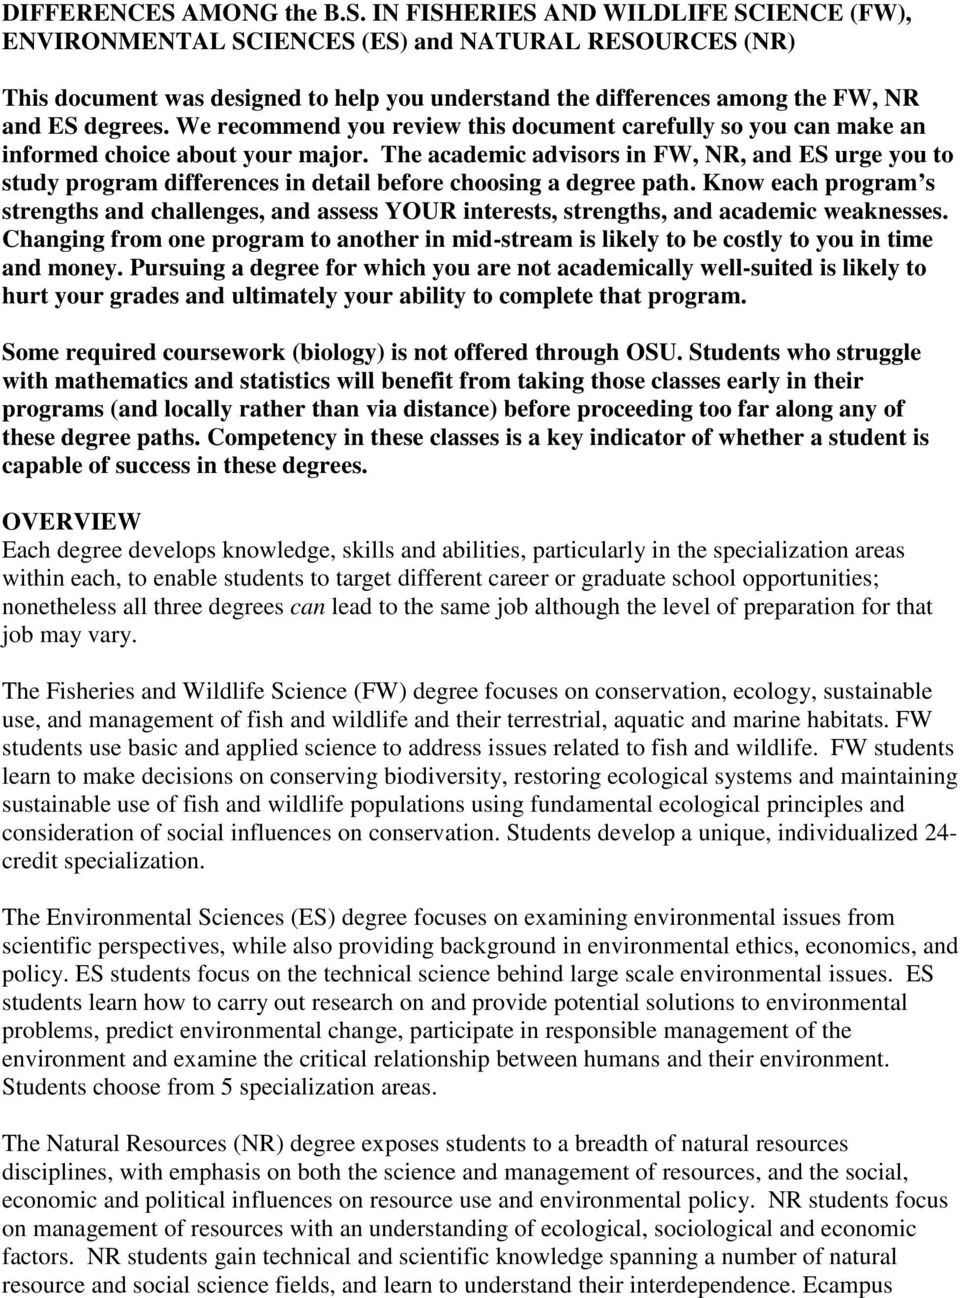 IN FISHERIES AND WILDLIFE SCIENCE (FW), ENVIRONMENTAL SCIENCES (ES) and NATURAL RESOURCES (NR) This document was designed to help you understand the differences among the FW, NR and ES degrees.